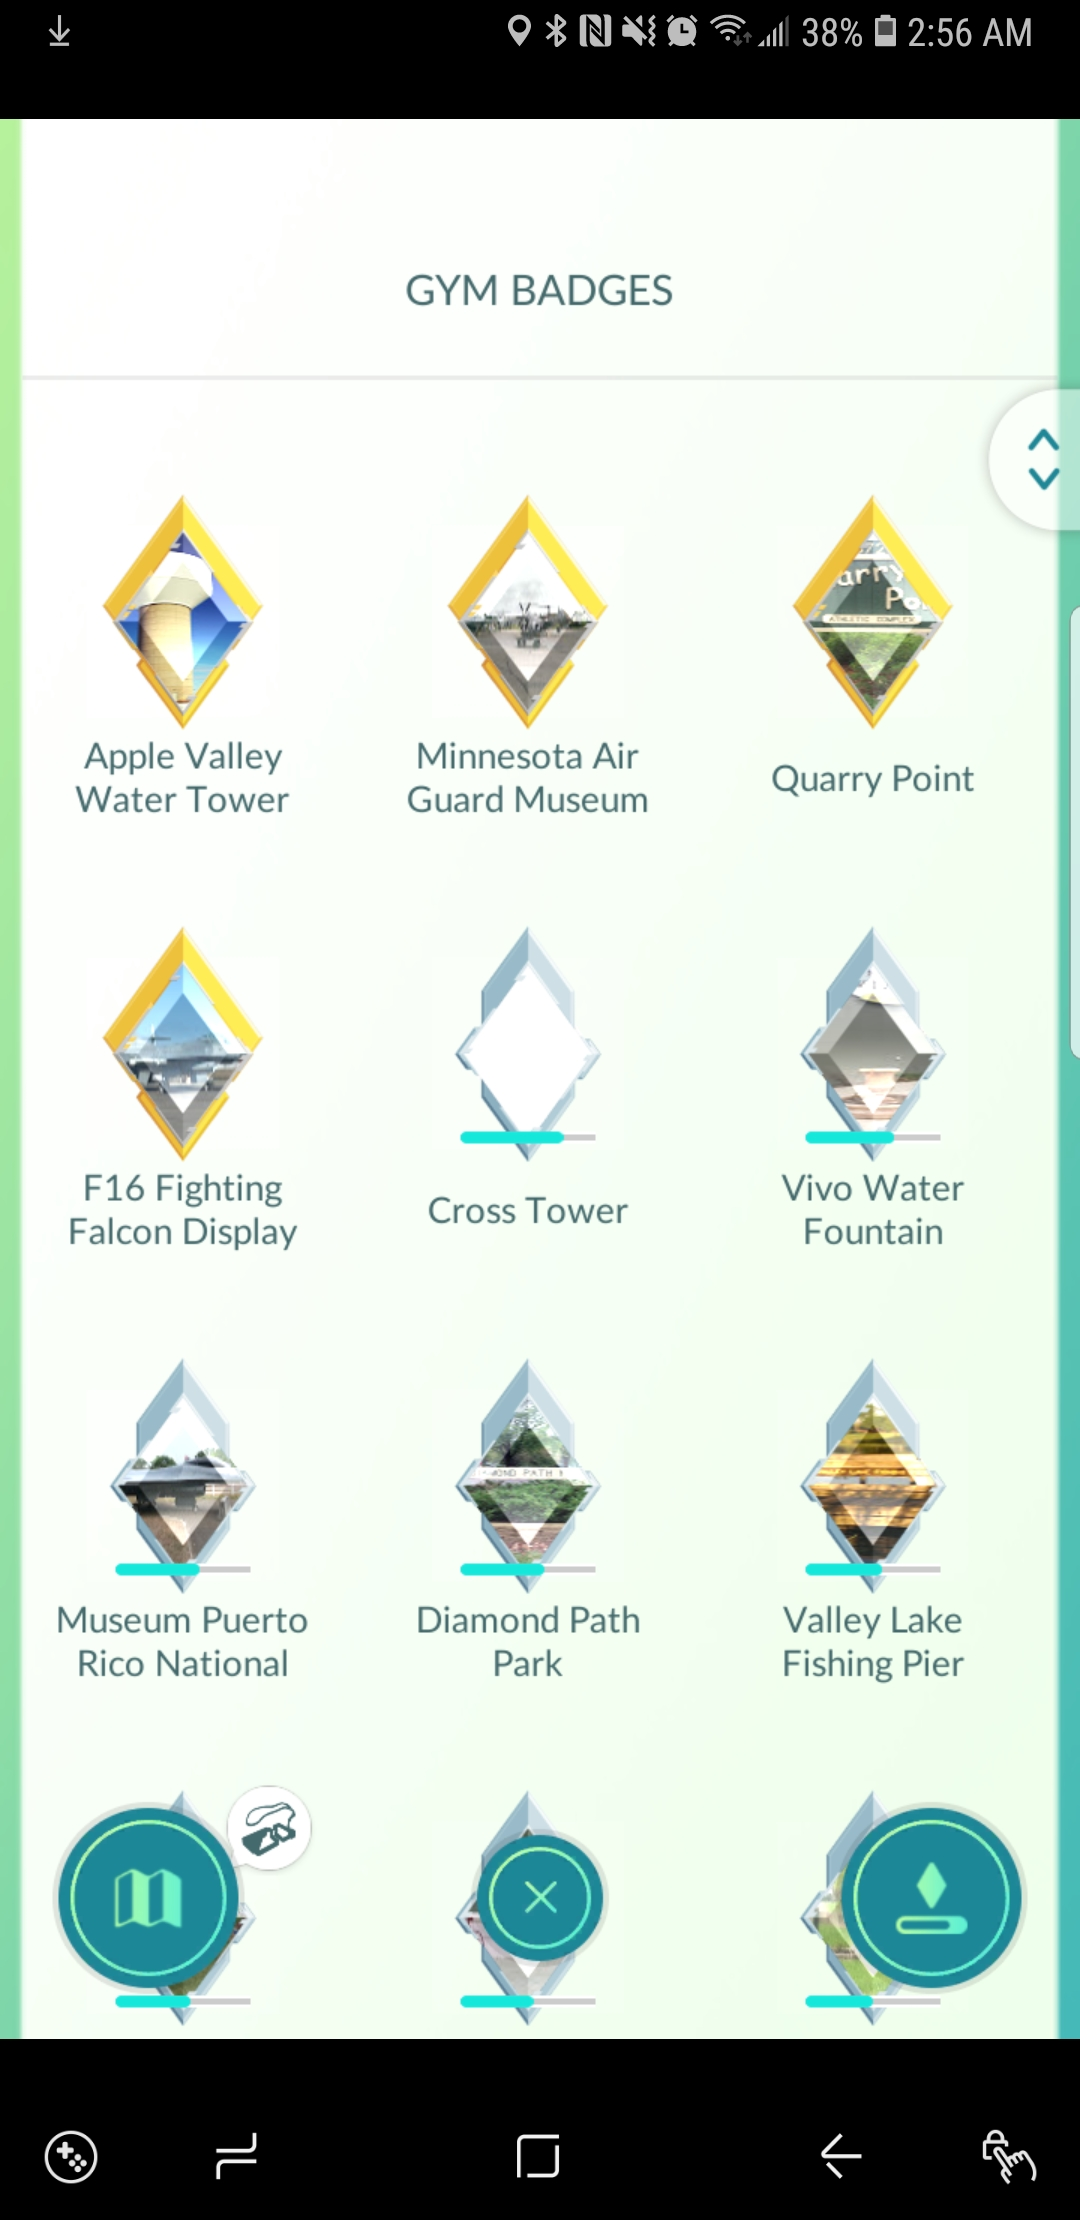 Benefits from gold gym badges? | Pokemon GO Wiki - GamePress